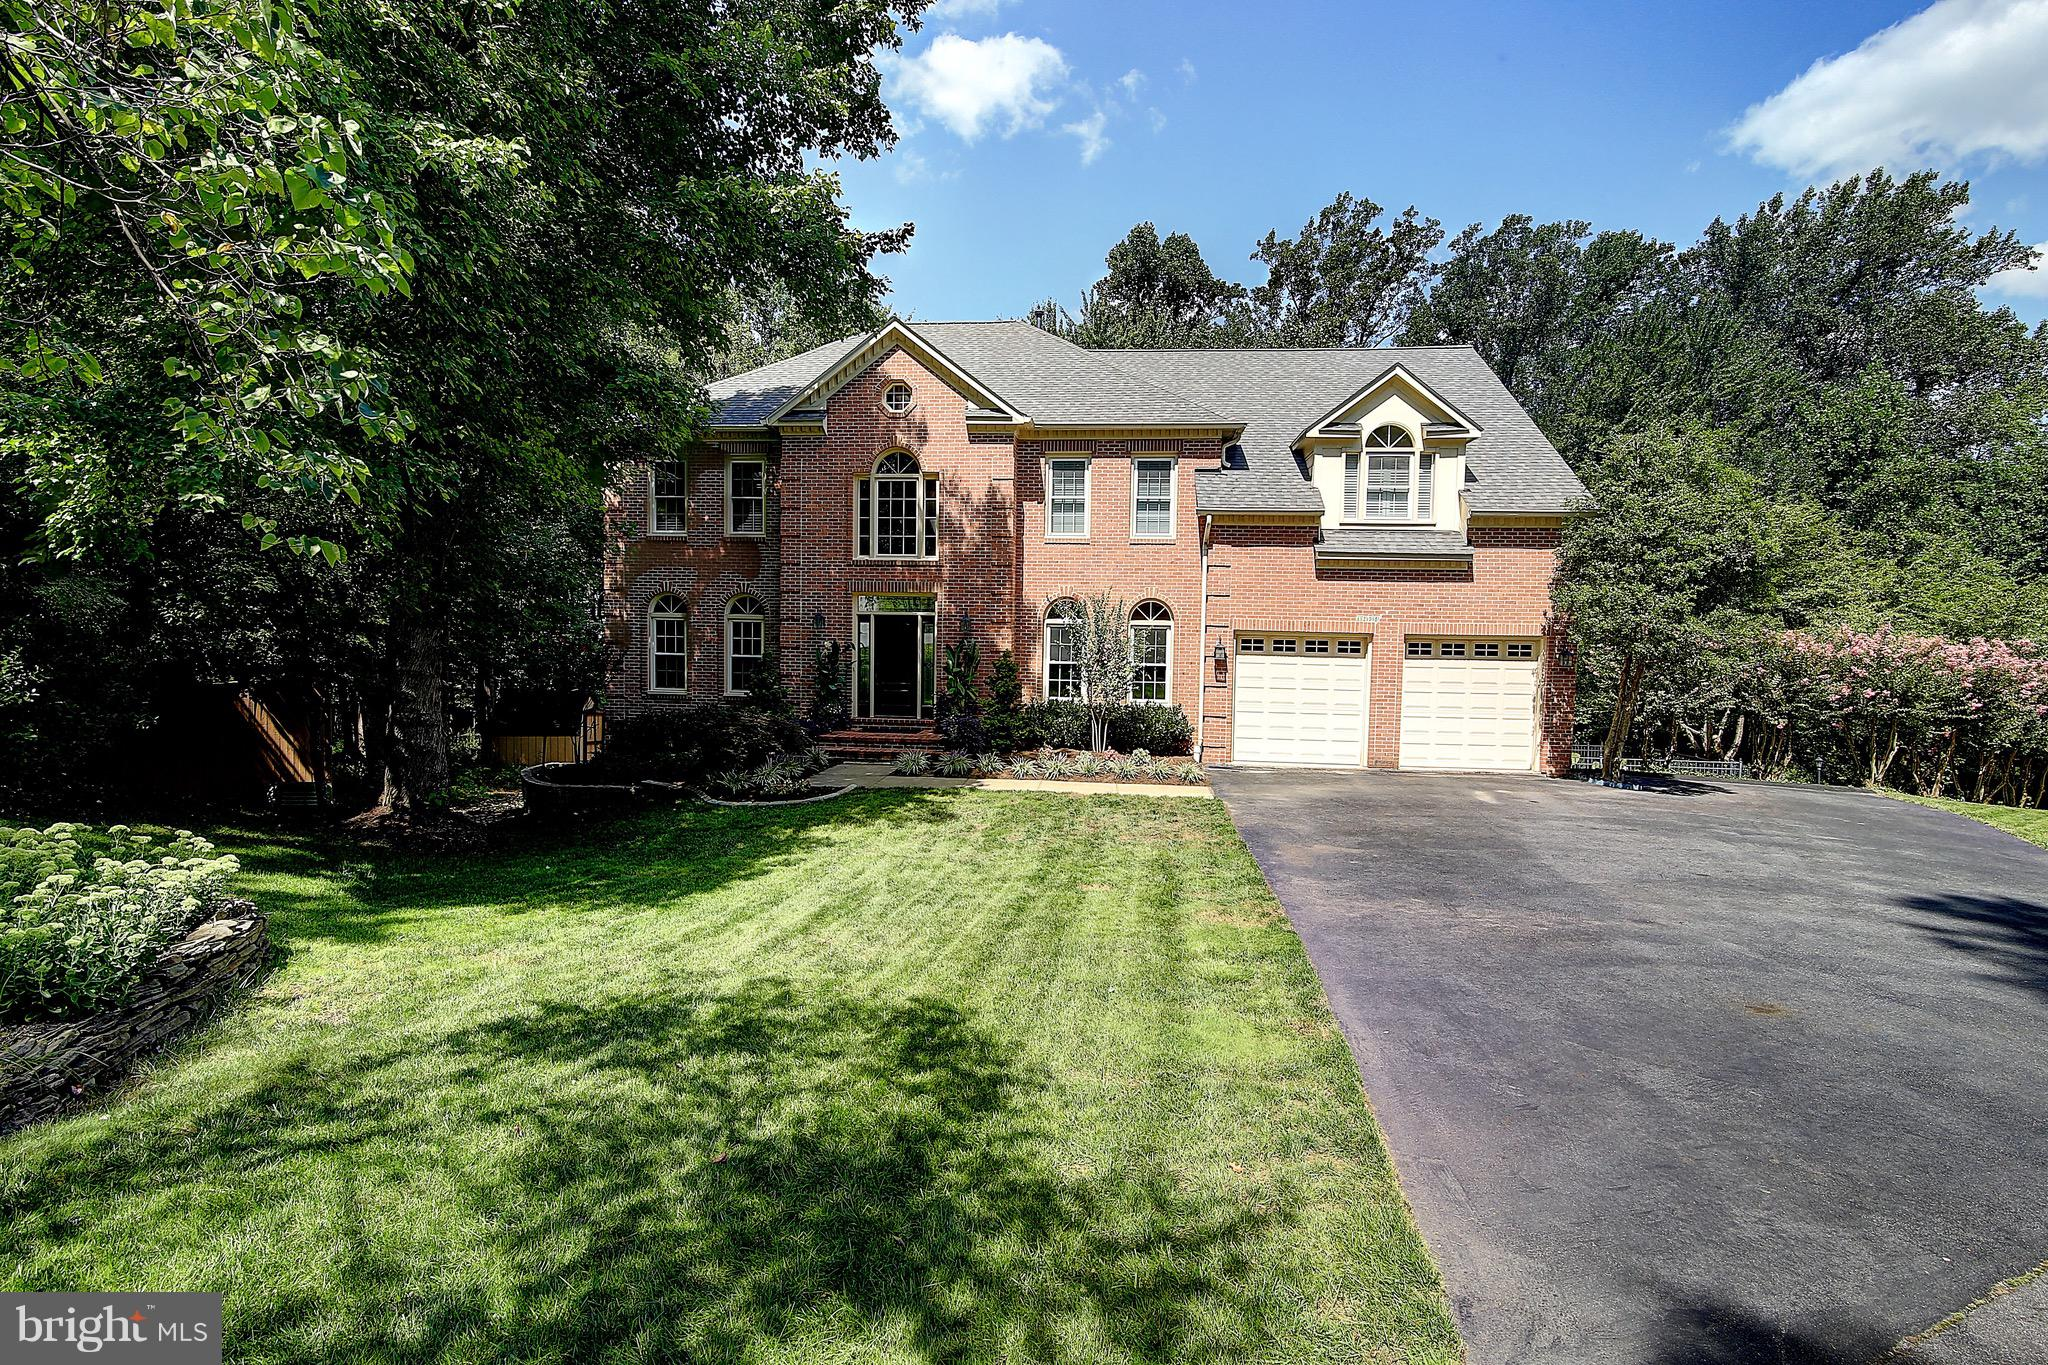 **Sophisticated and Pristine** all brick-front Colonial in desirable Reston community nestled on a quiet and secluded.....nearly half acre lot! This impeccable/ 6 bedroom house features a  dramatic 18' two story foyer with spiral staircase, gleaming hardwood flooring, detailed custom moldings, and fresh paint throughout. The sun-filled family room showcases 18' two story floor-to-ceiling custom textured stonework, gas fireplace, new palladian windows and skylights. Gourmet kitchen has stainless steel appliances, newly updated refaced cabinets, granite counter tops, convection oven, breakfast room and new windows overlooking the fabulous pool and picturesque  setting. There are 4 generous sized bedrooms on the upper level with 3 full bathrooms  The owner's suite is expansive; has 2 walk-in closets and wood floors. The newly remodeled luxurious master bath has a large walk-in Roman shower surrounded by gorgeous Travertine and mosaic custom tiles. The modern and sleek free standing soaking tub, and towel warming bar promises a Relaxing spa experience. The fully finished basement walks out to your glorious retreat, has a large family friendly room that could accommodate exercise and/or media/game space; has two additional bedrooms, full bath, and a ultra grand storage closet. This warm and inviting house offers a tranquil, premium lot with your own private backyard oasis. The coveted in-ground swimming pool has a new motorized pool cover, built-in BBQ pit, extensive front and back landscaping, and a fully fenced-in yard backing to trees... an entertainer's dream!All new doors and energy efficient windows - replaced in 2016, New roof- August 2018. Conveniently located within 5 min from Reston Town Center and within one mile to the new Wiehle/Reston Metro Station. This house is sure to go fast!